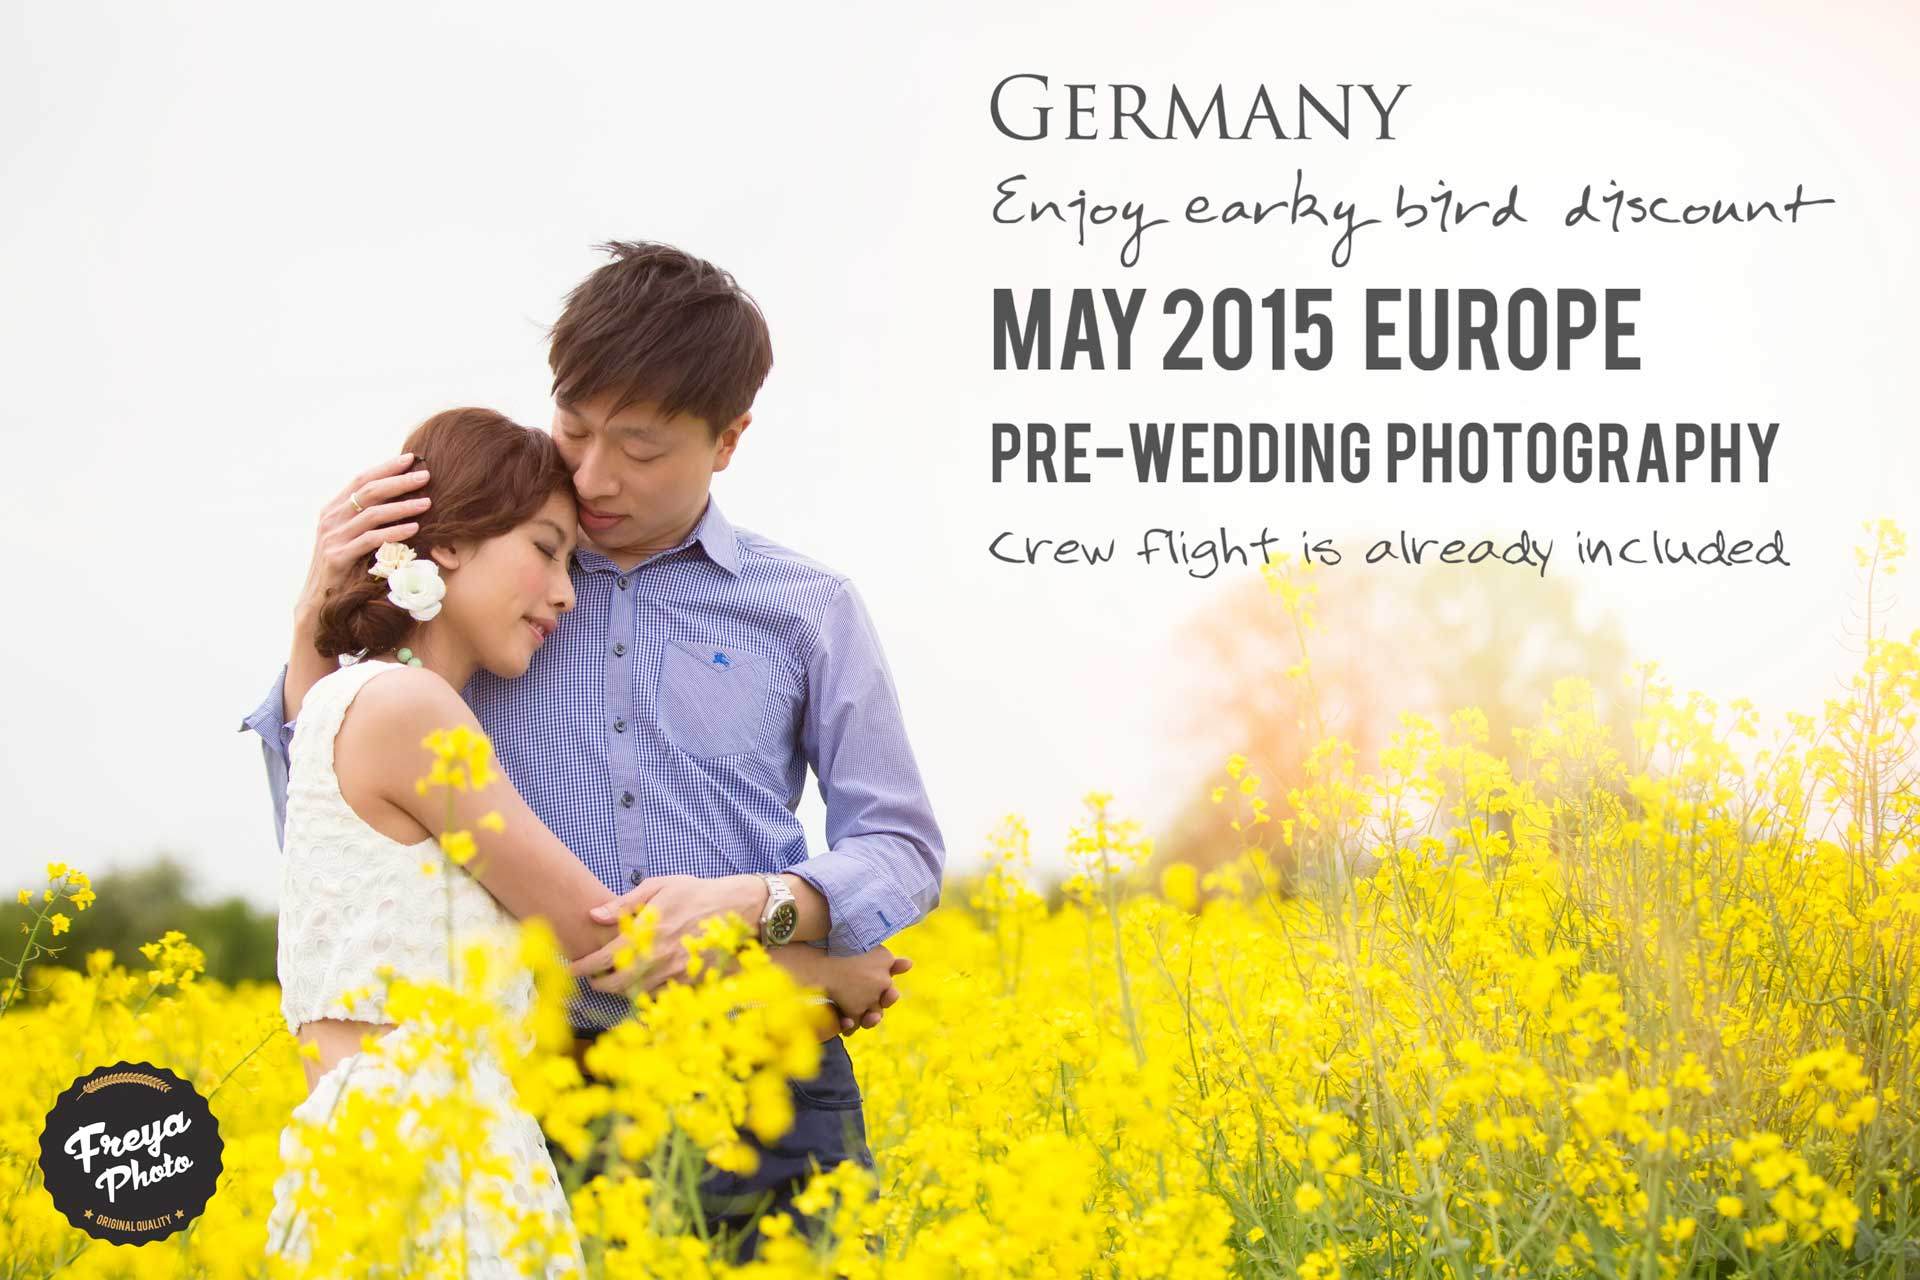 Germany-overseas-prewedding-photos-alan1